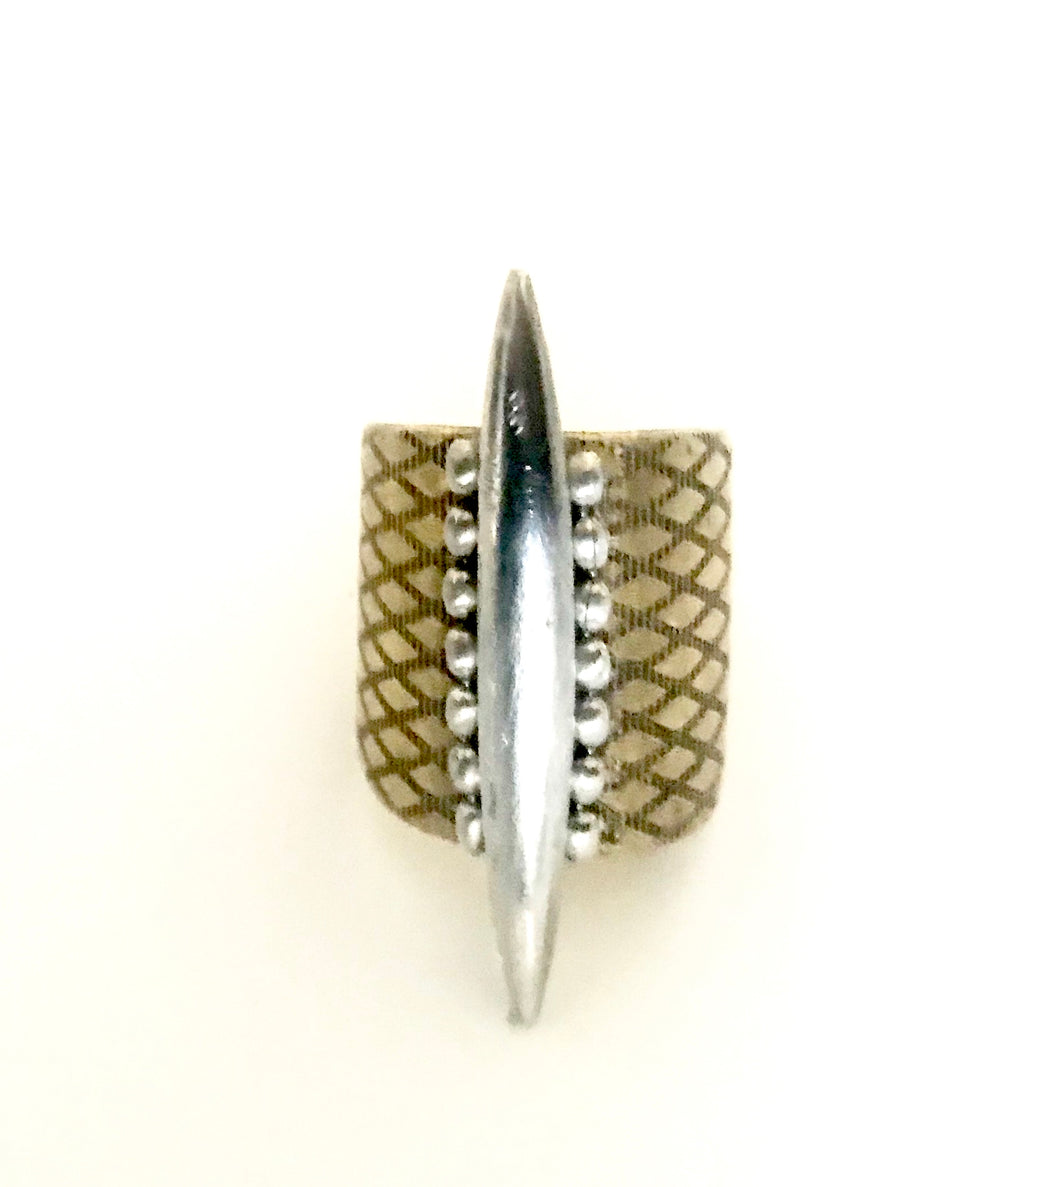 Spike Ring✨ Sterling silver and brass adjustable ring